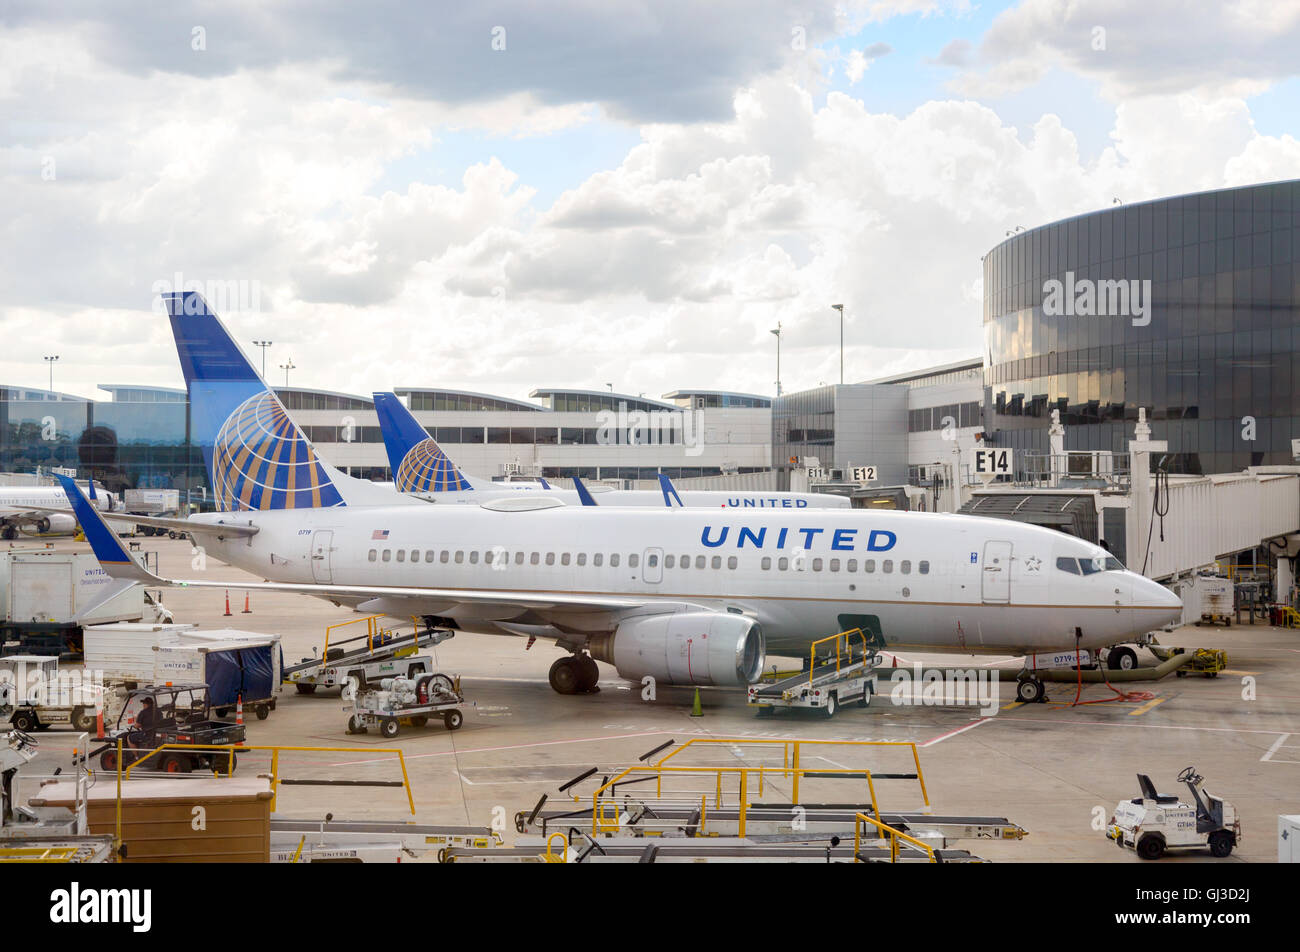 United airlines plane on the ground at George Bush Intercontinental airport, Houston, Texas, USA - Stock Image